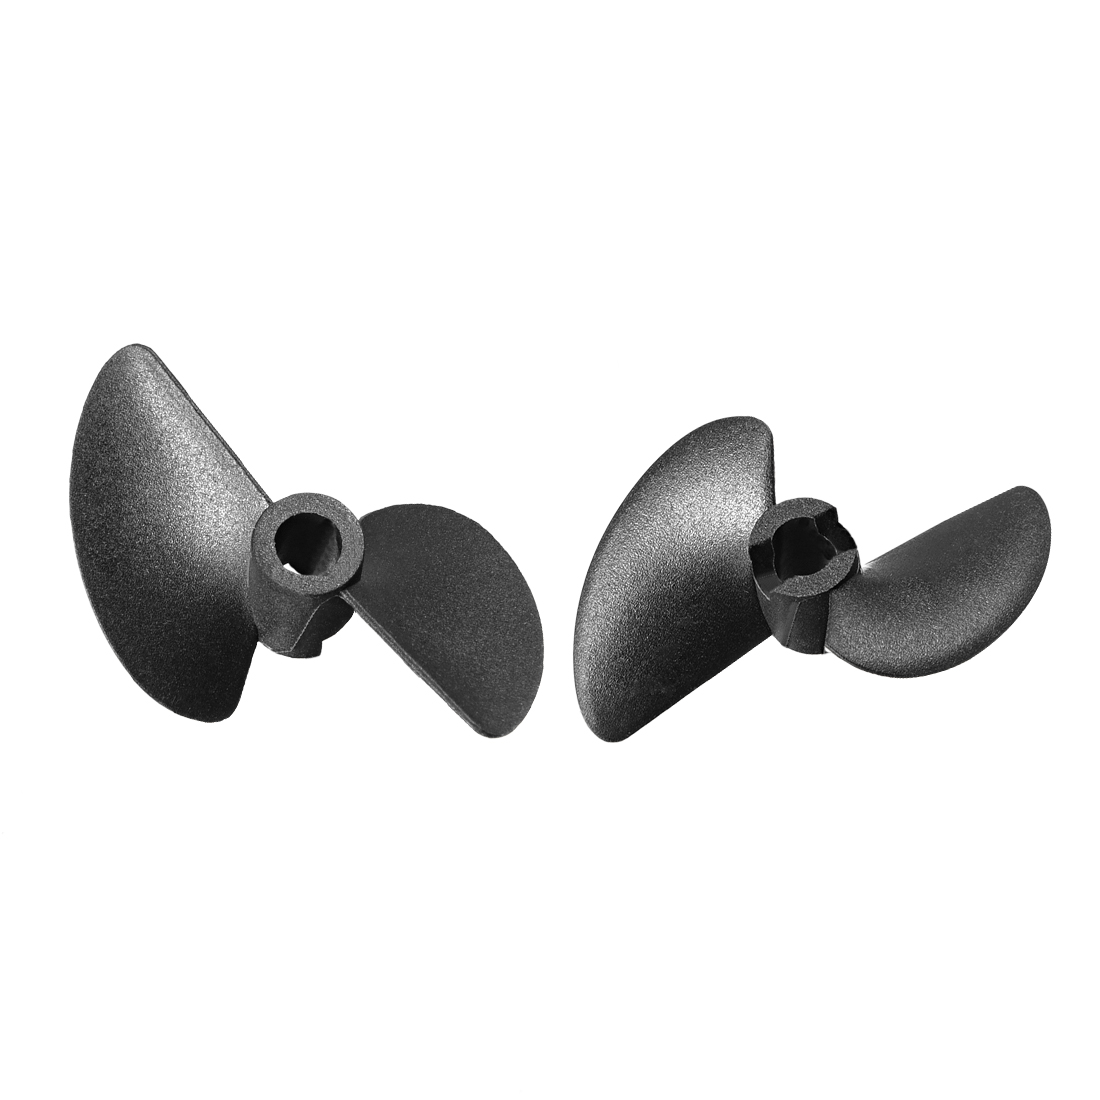 3pcs 40mm Dia P/D 1.4 Black Plastic Dual Vane Rotating Propeller Prop 4014 for 4.76mm Shaft RC Boat Ship Model